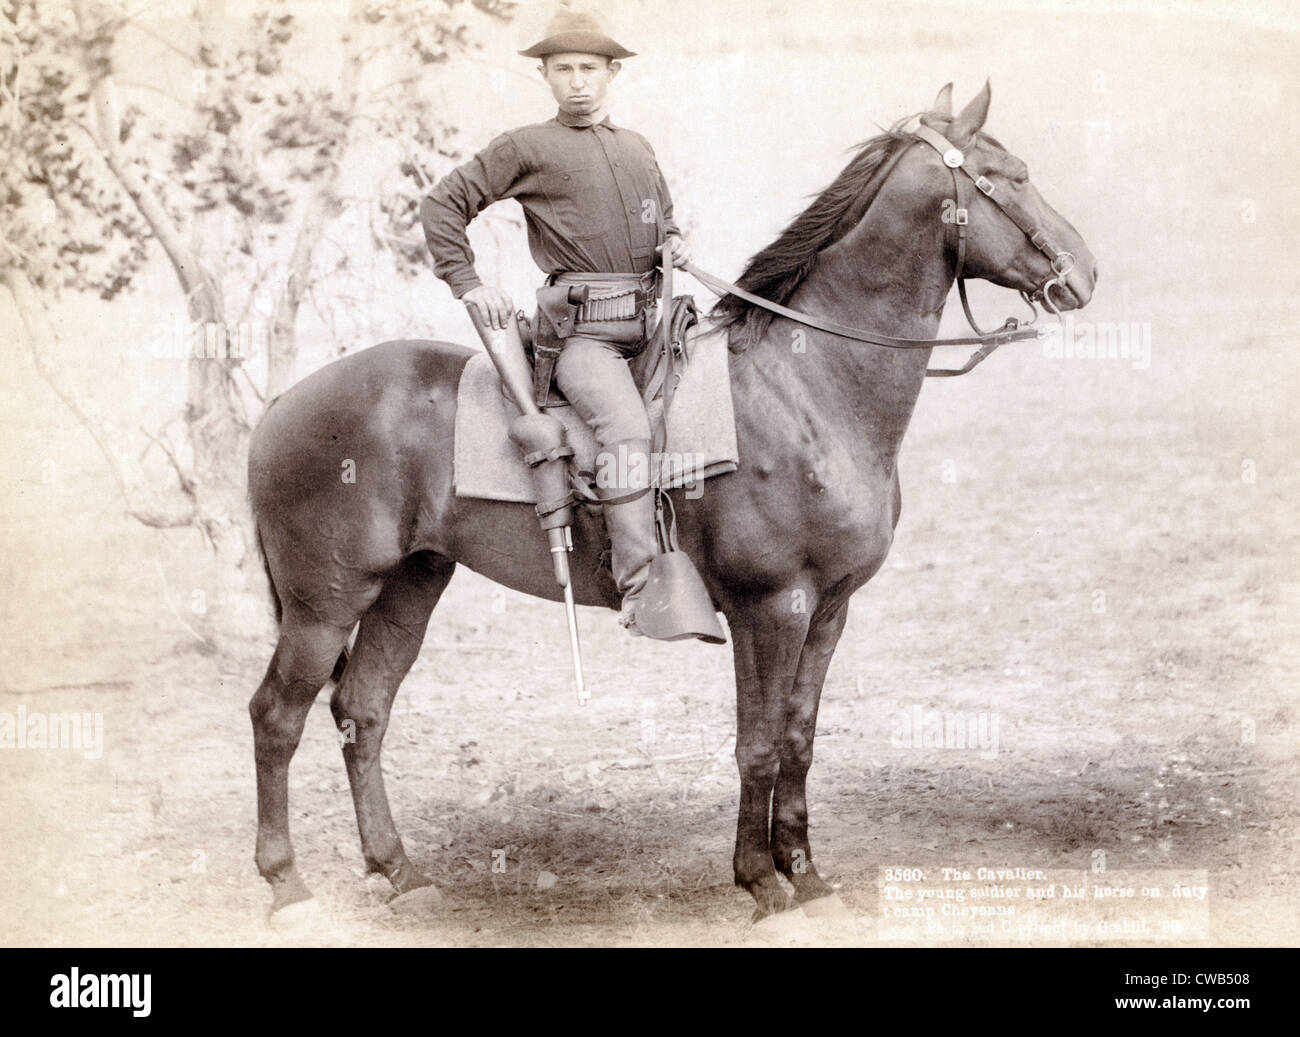 Wild West. The Cavalier. The young soldier and his horse on duty at camp, Cheyenne. photo by John C. Grabill, 1890 - Stock Image